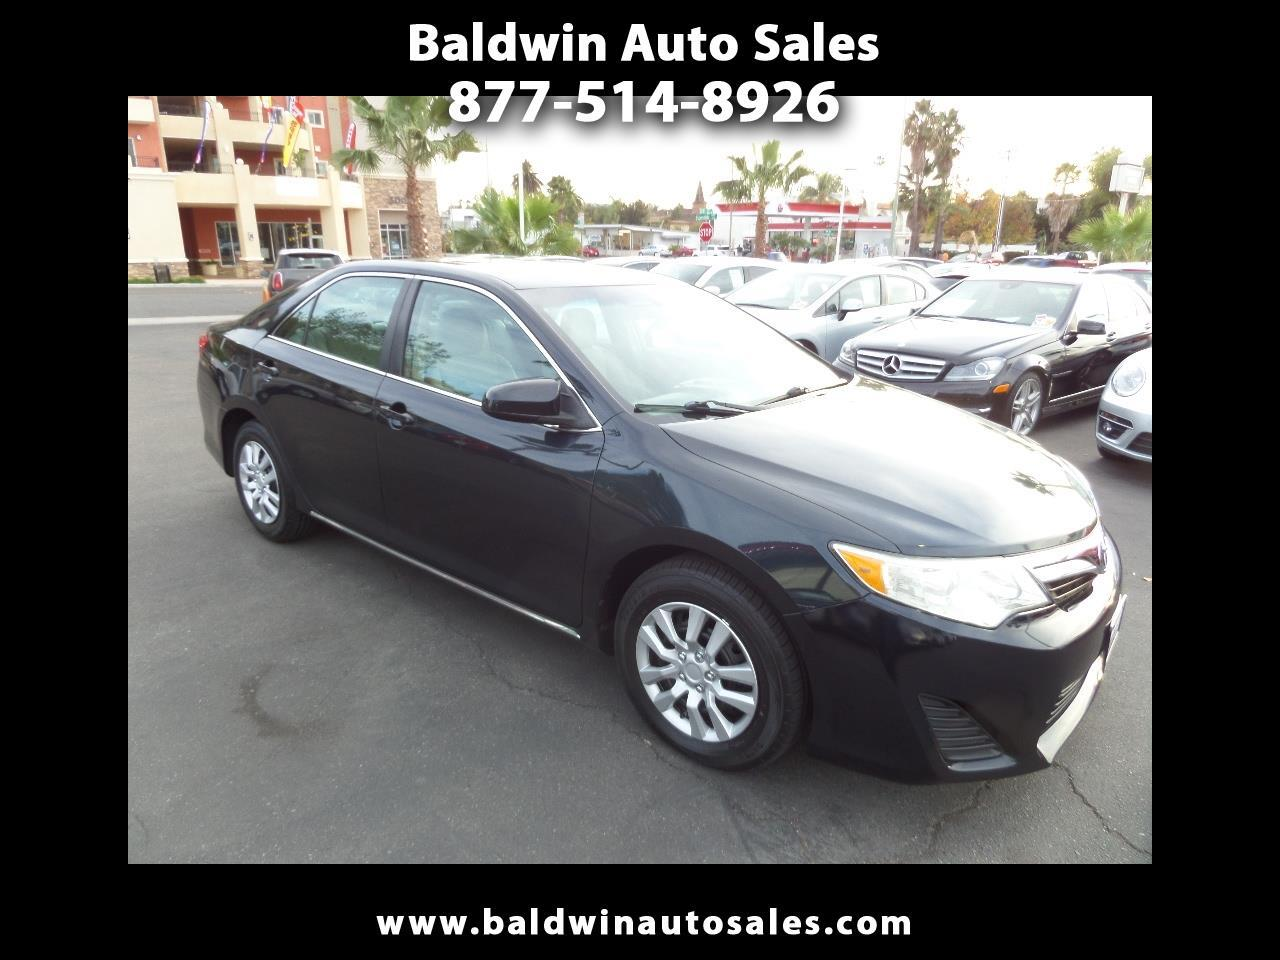 2014 Toyota Camry 2014.5 4dr Sdn I4 Auto LE (Natl)